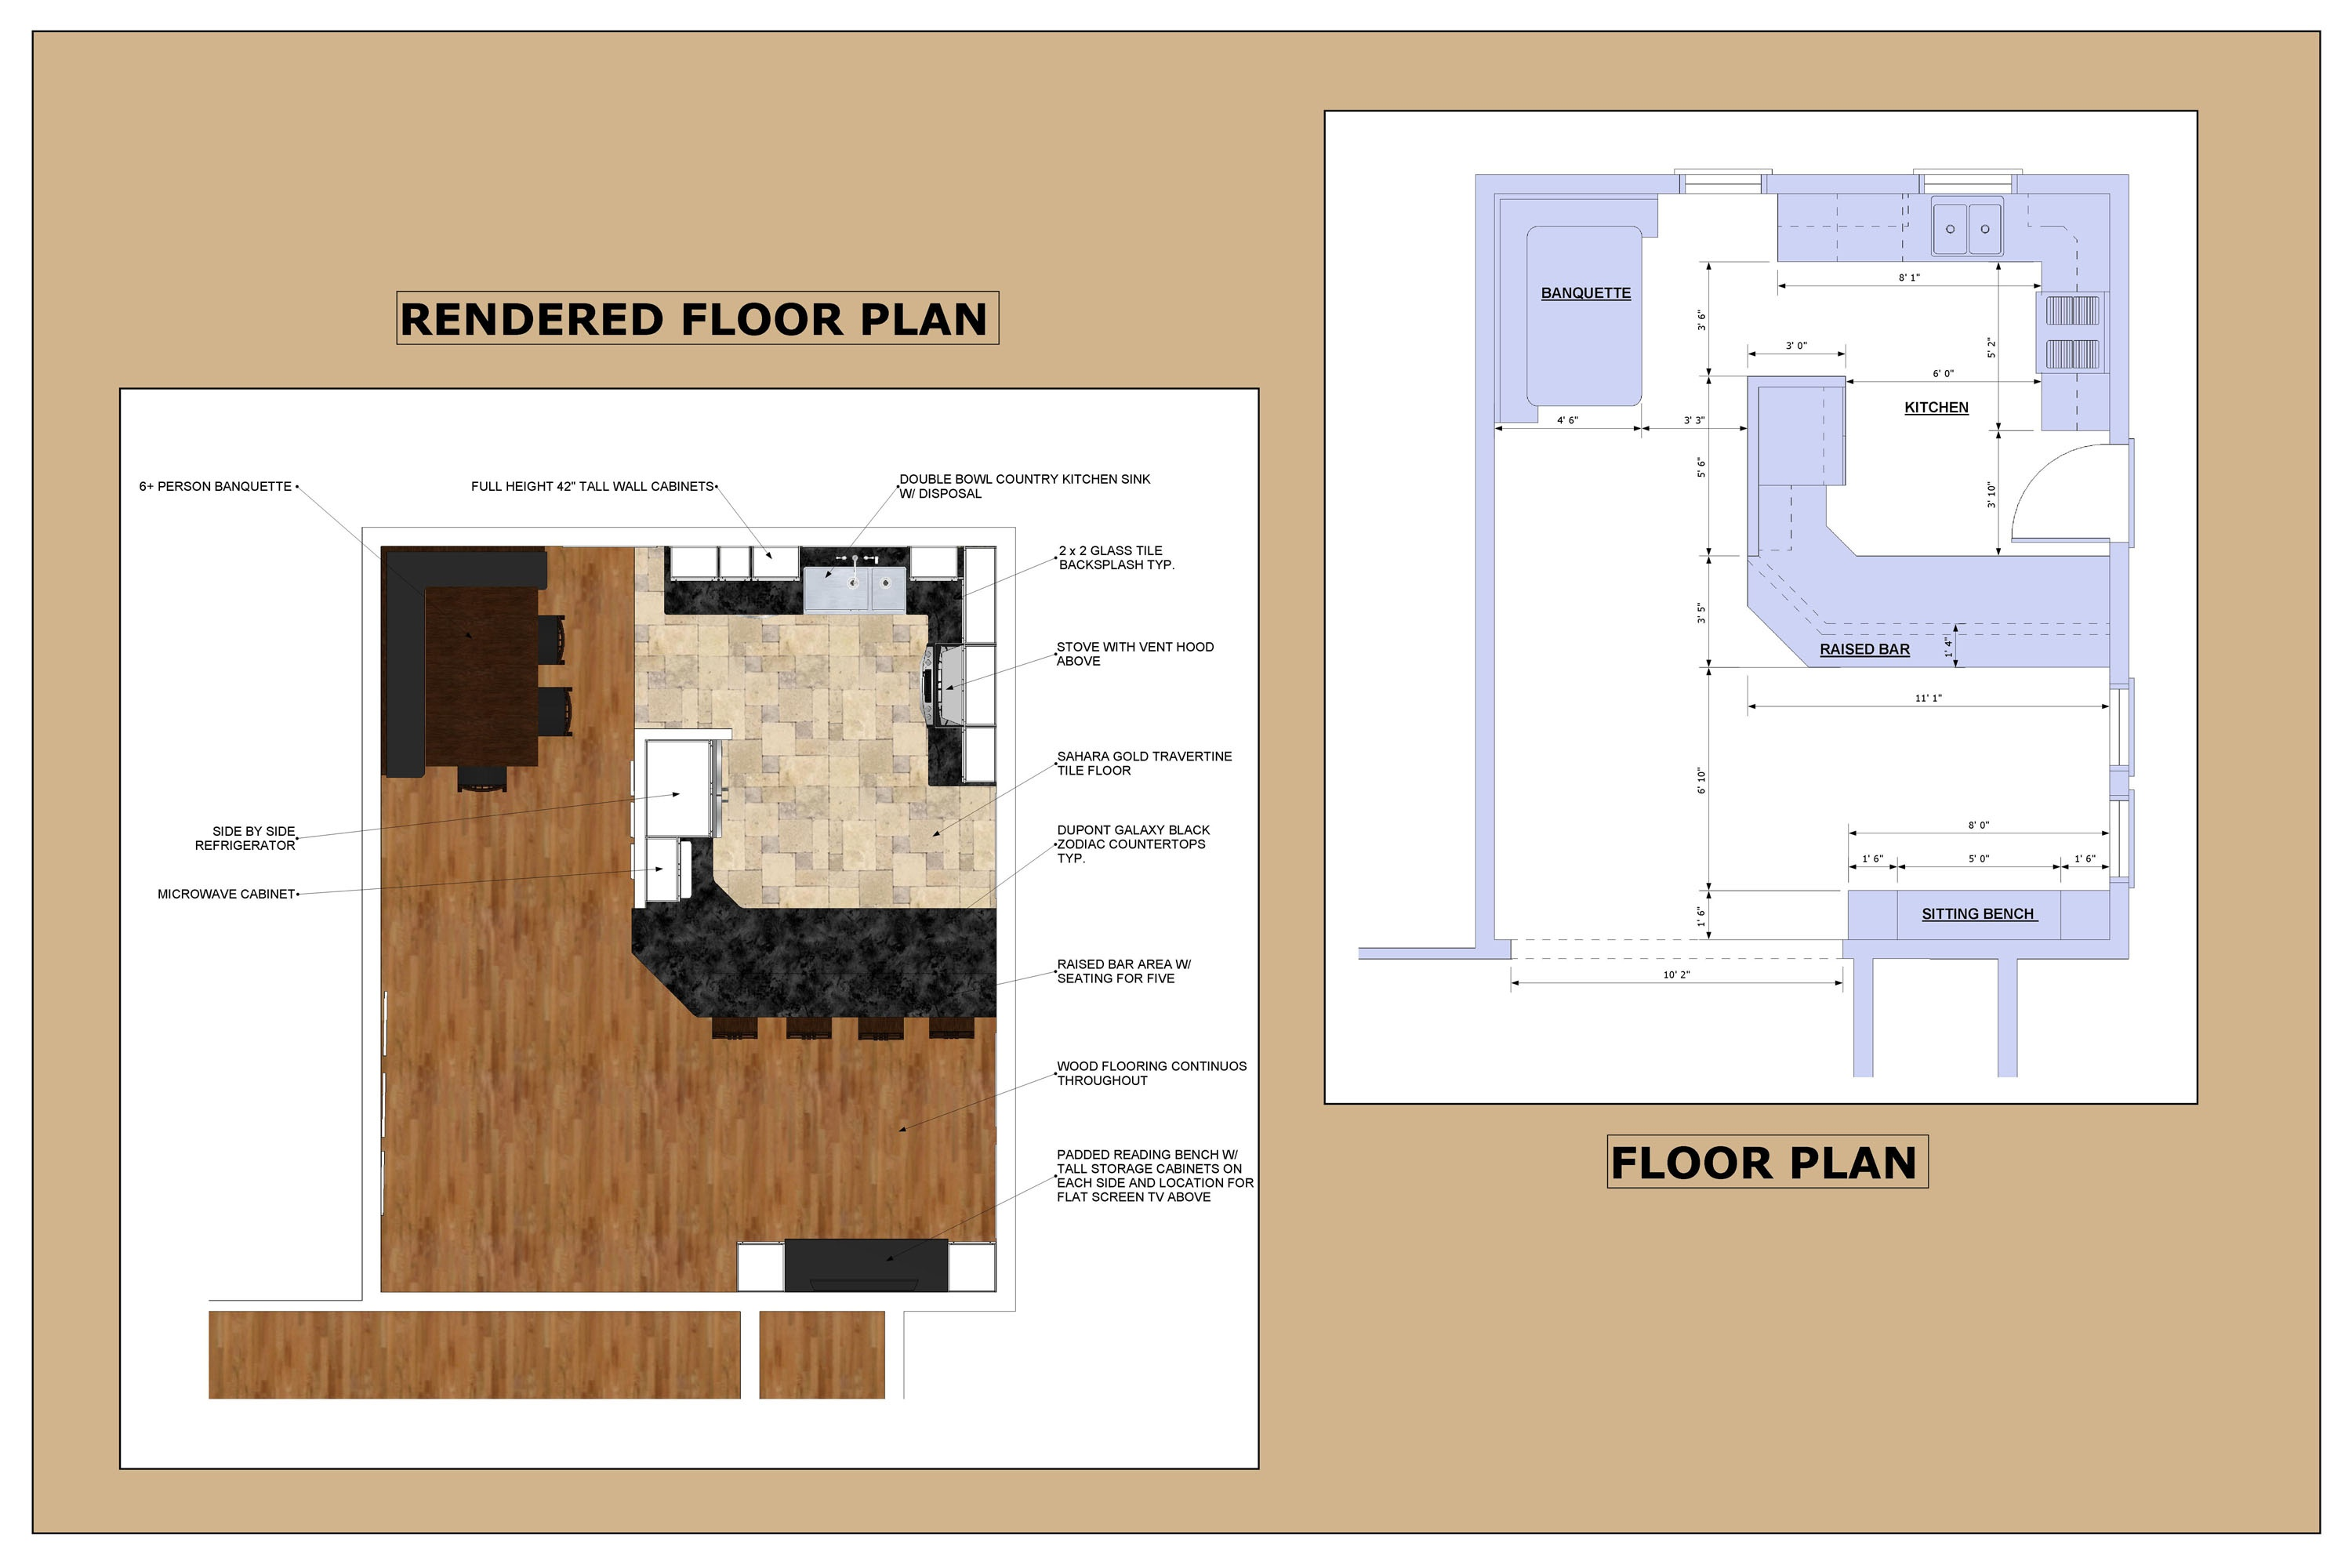 New York City Kitchen Floor Plans (Image 9 of 16)